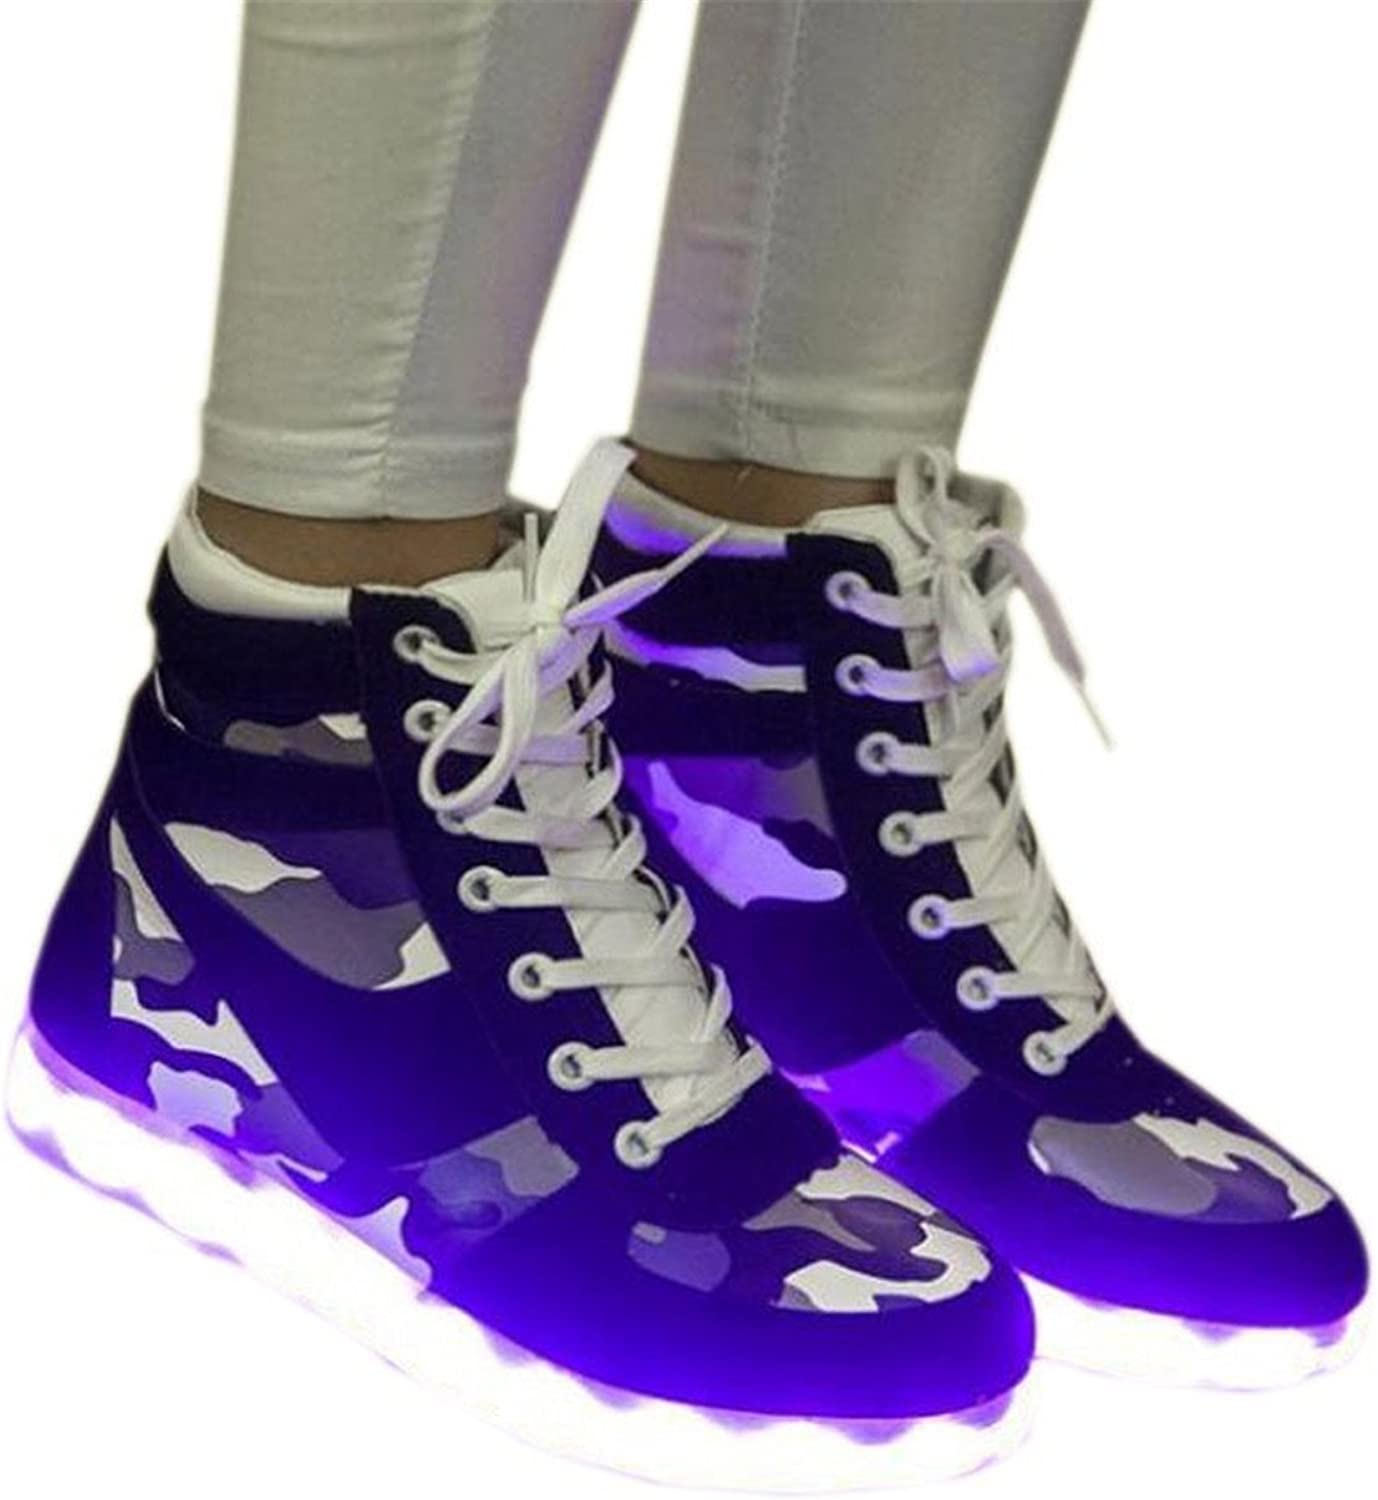 Uerescha 7 colors LED light shoes High Top Sports Fashion Sneakers for women Light Up shoes with led